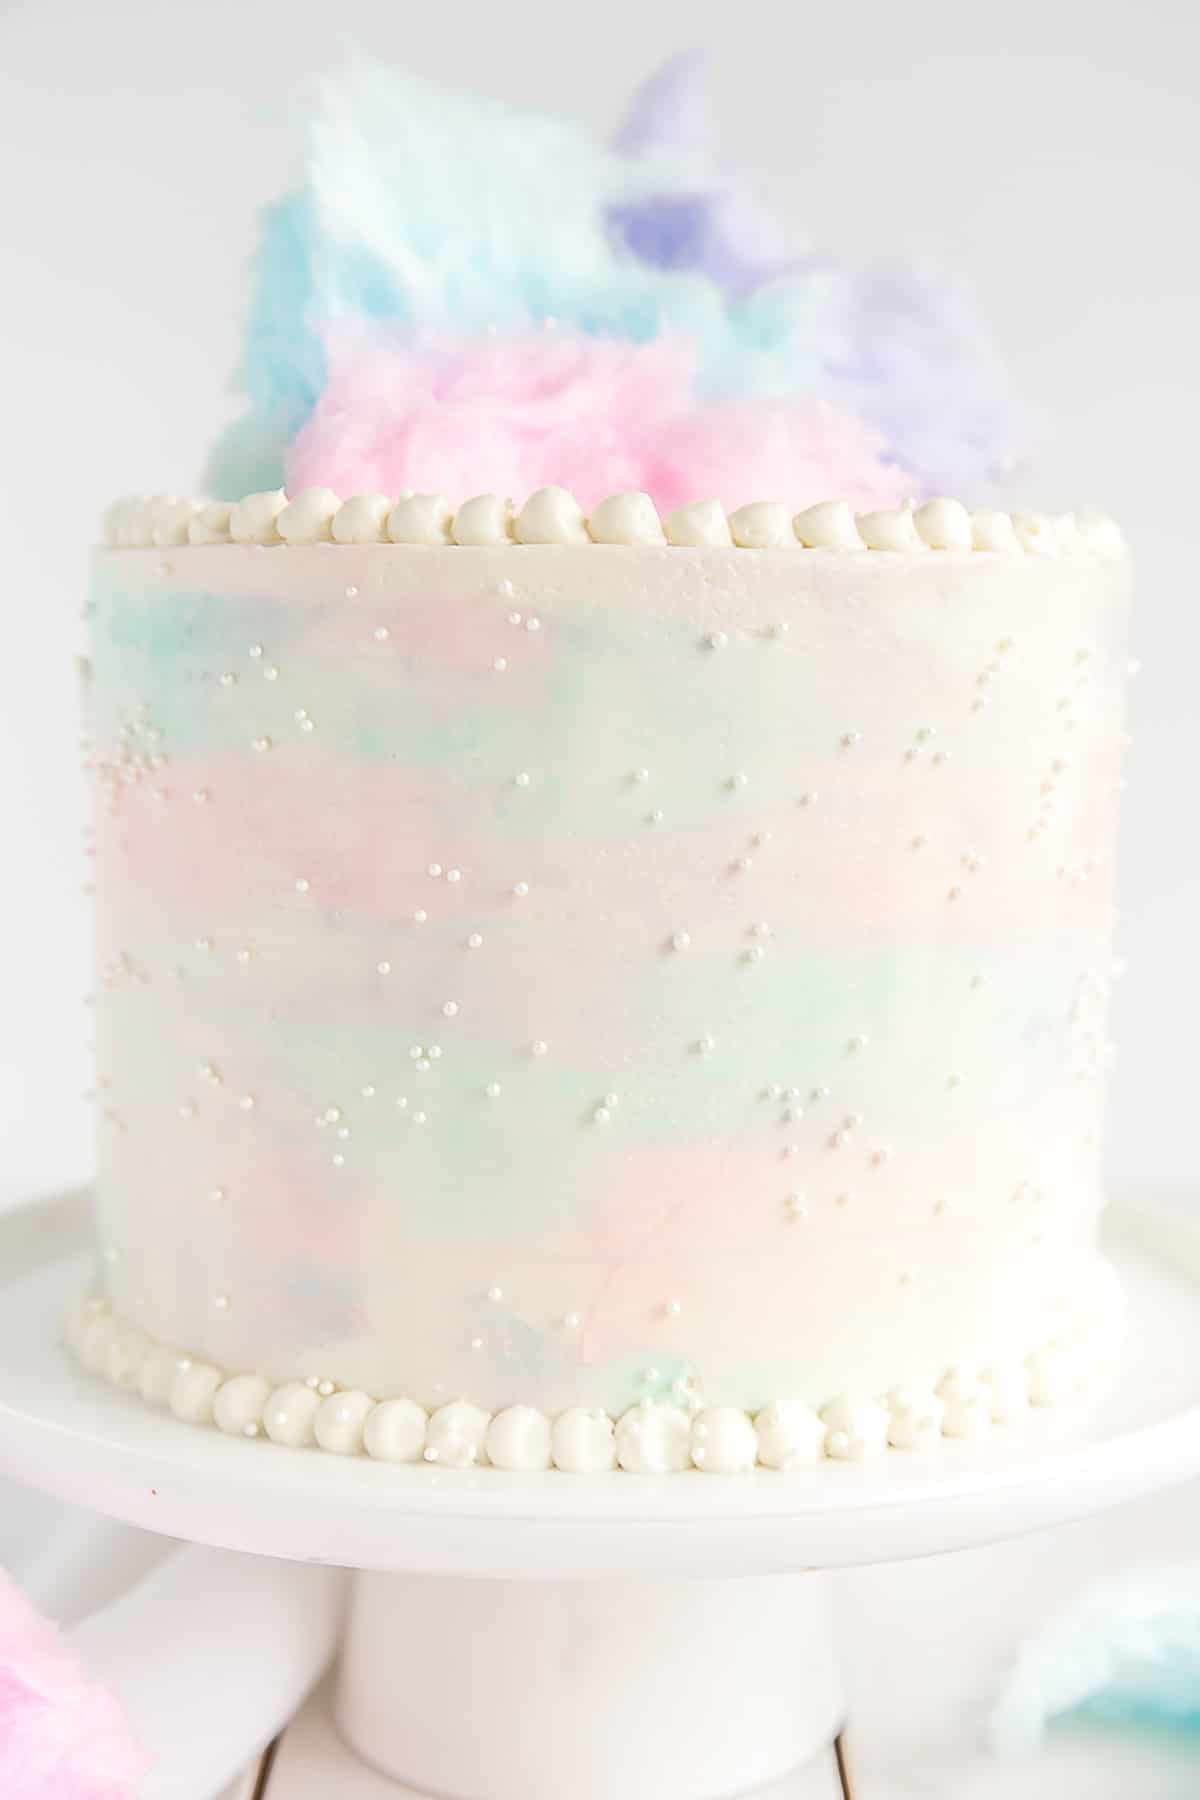 Cotton Candy Cake close up of watercolor frosting effect.